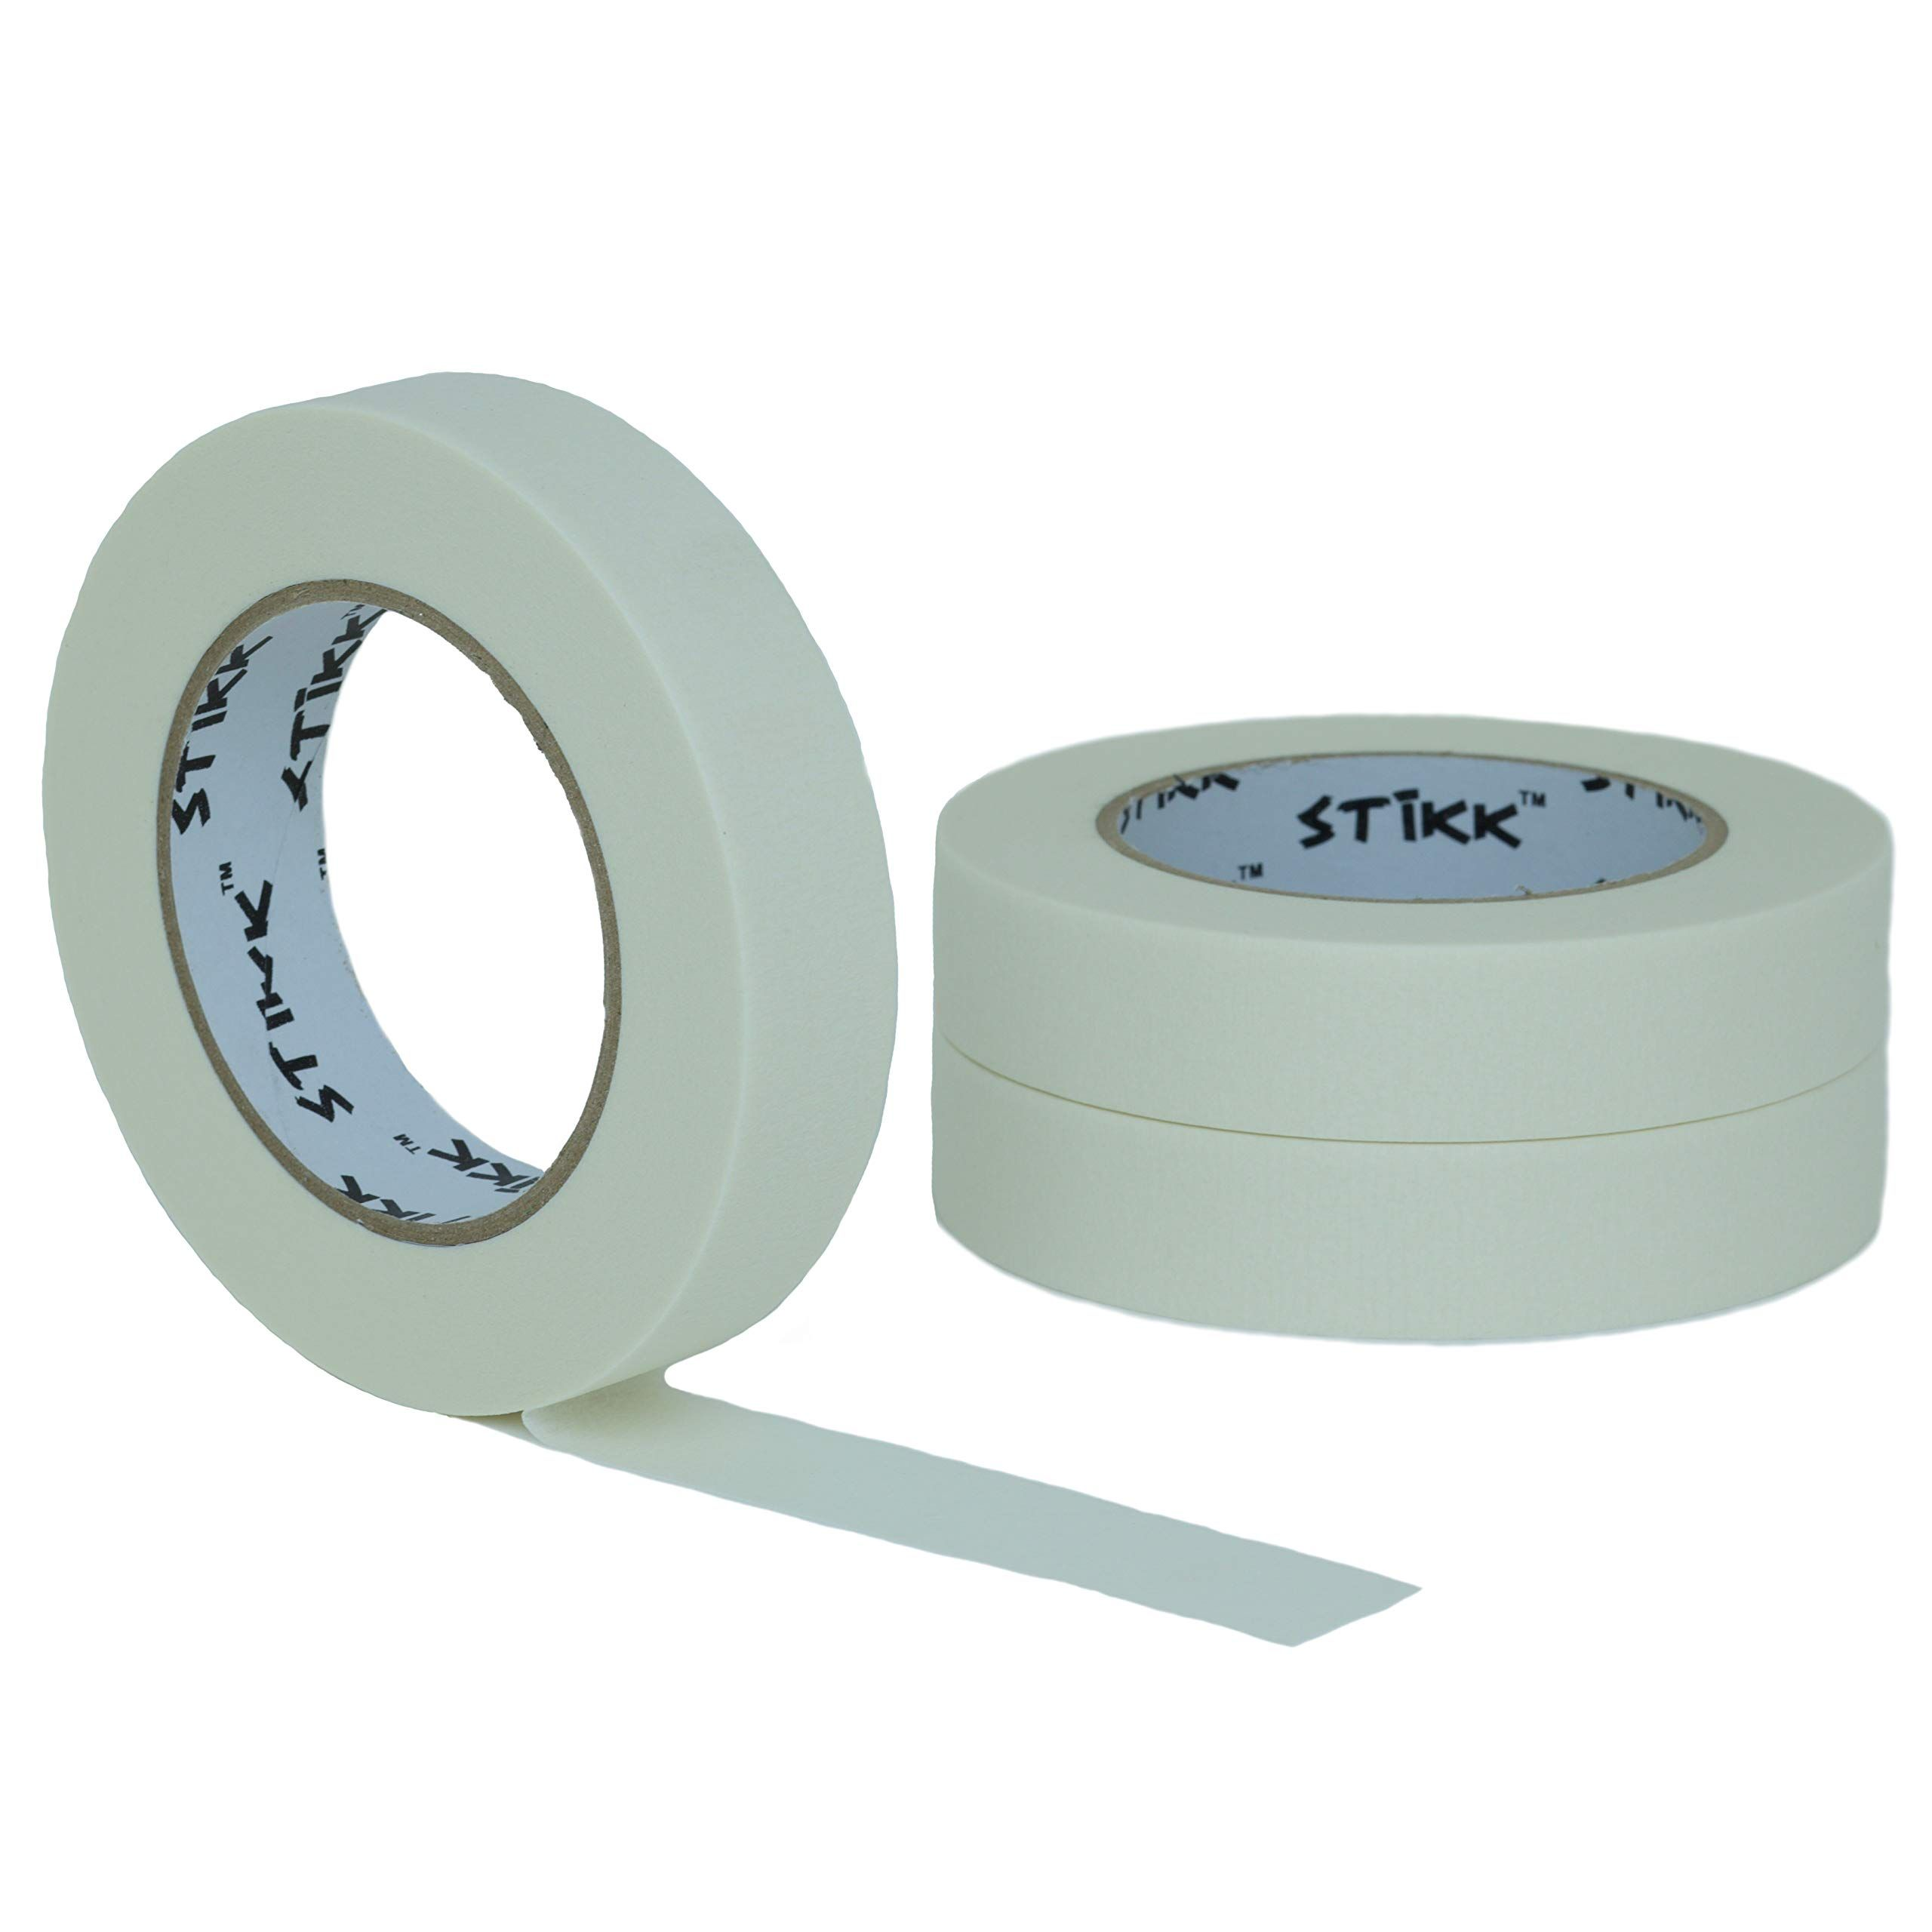 3 Pack 1 Inch X 60yd Stikk White Painters Tape 14 Day Easy Removal Trim Edge Finishing Decorative Marking Masking Tape 94 In Painters Tape Masking Tape Tape